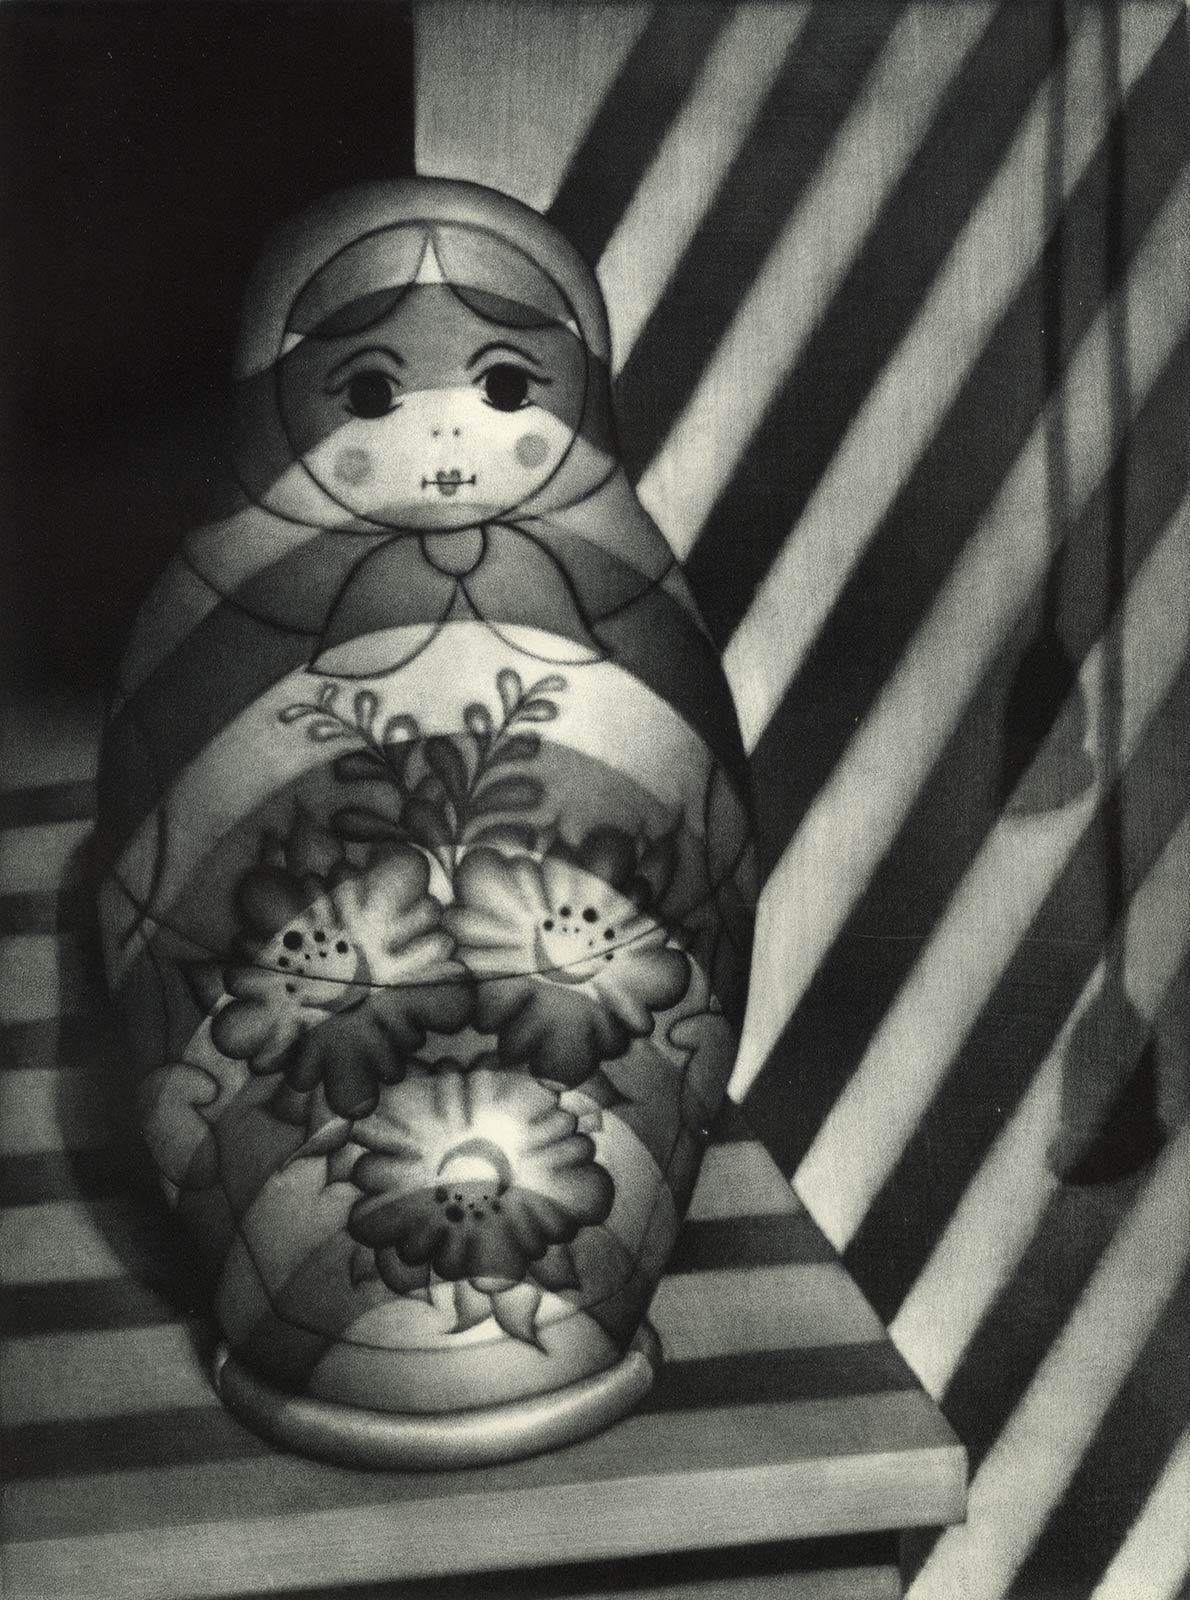 Venetian Blinds Russian Doll (Matryoshka resting dolls with light from blinds)